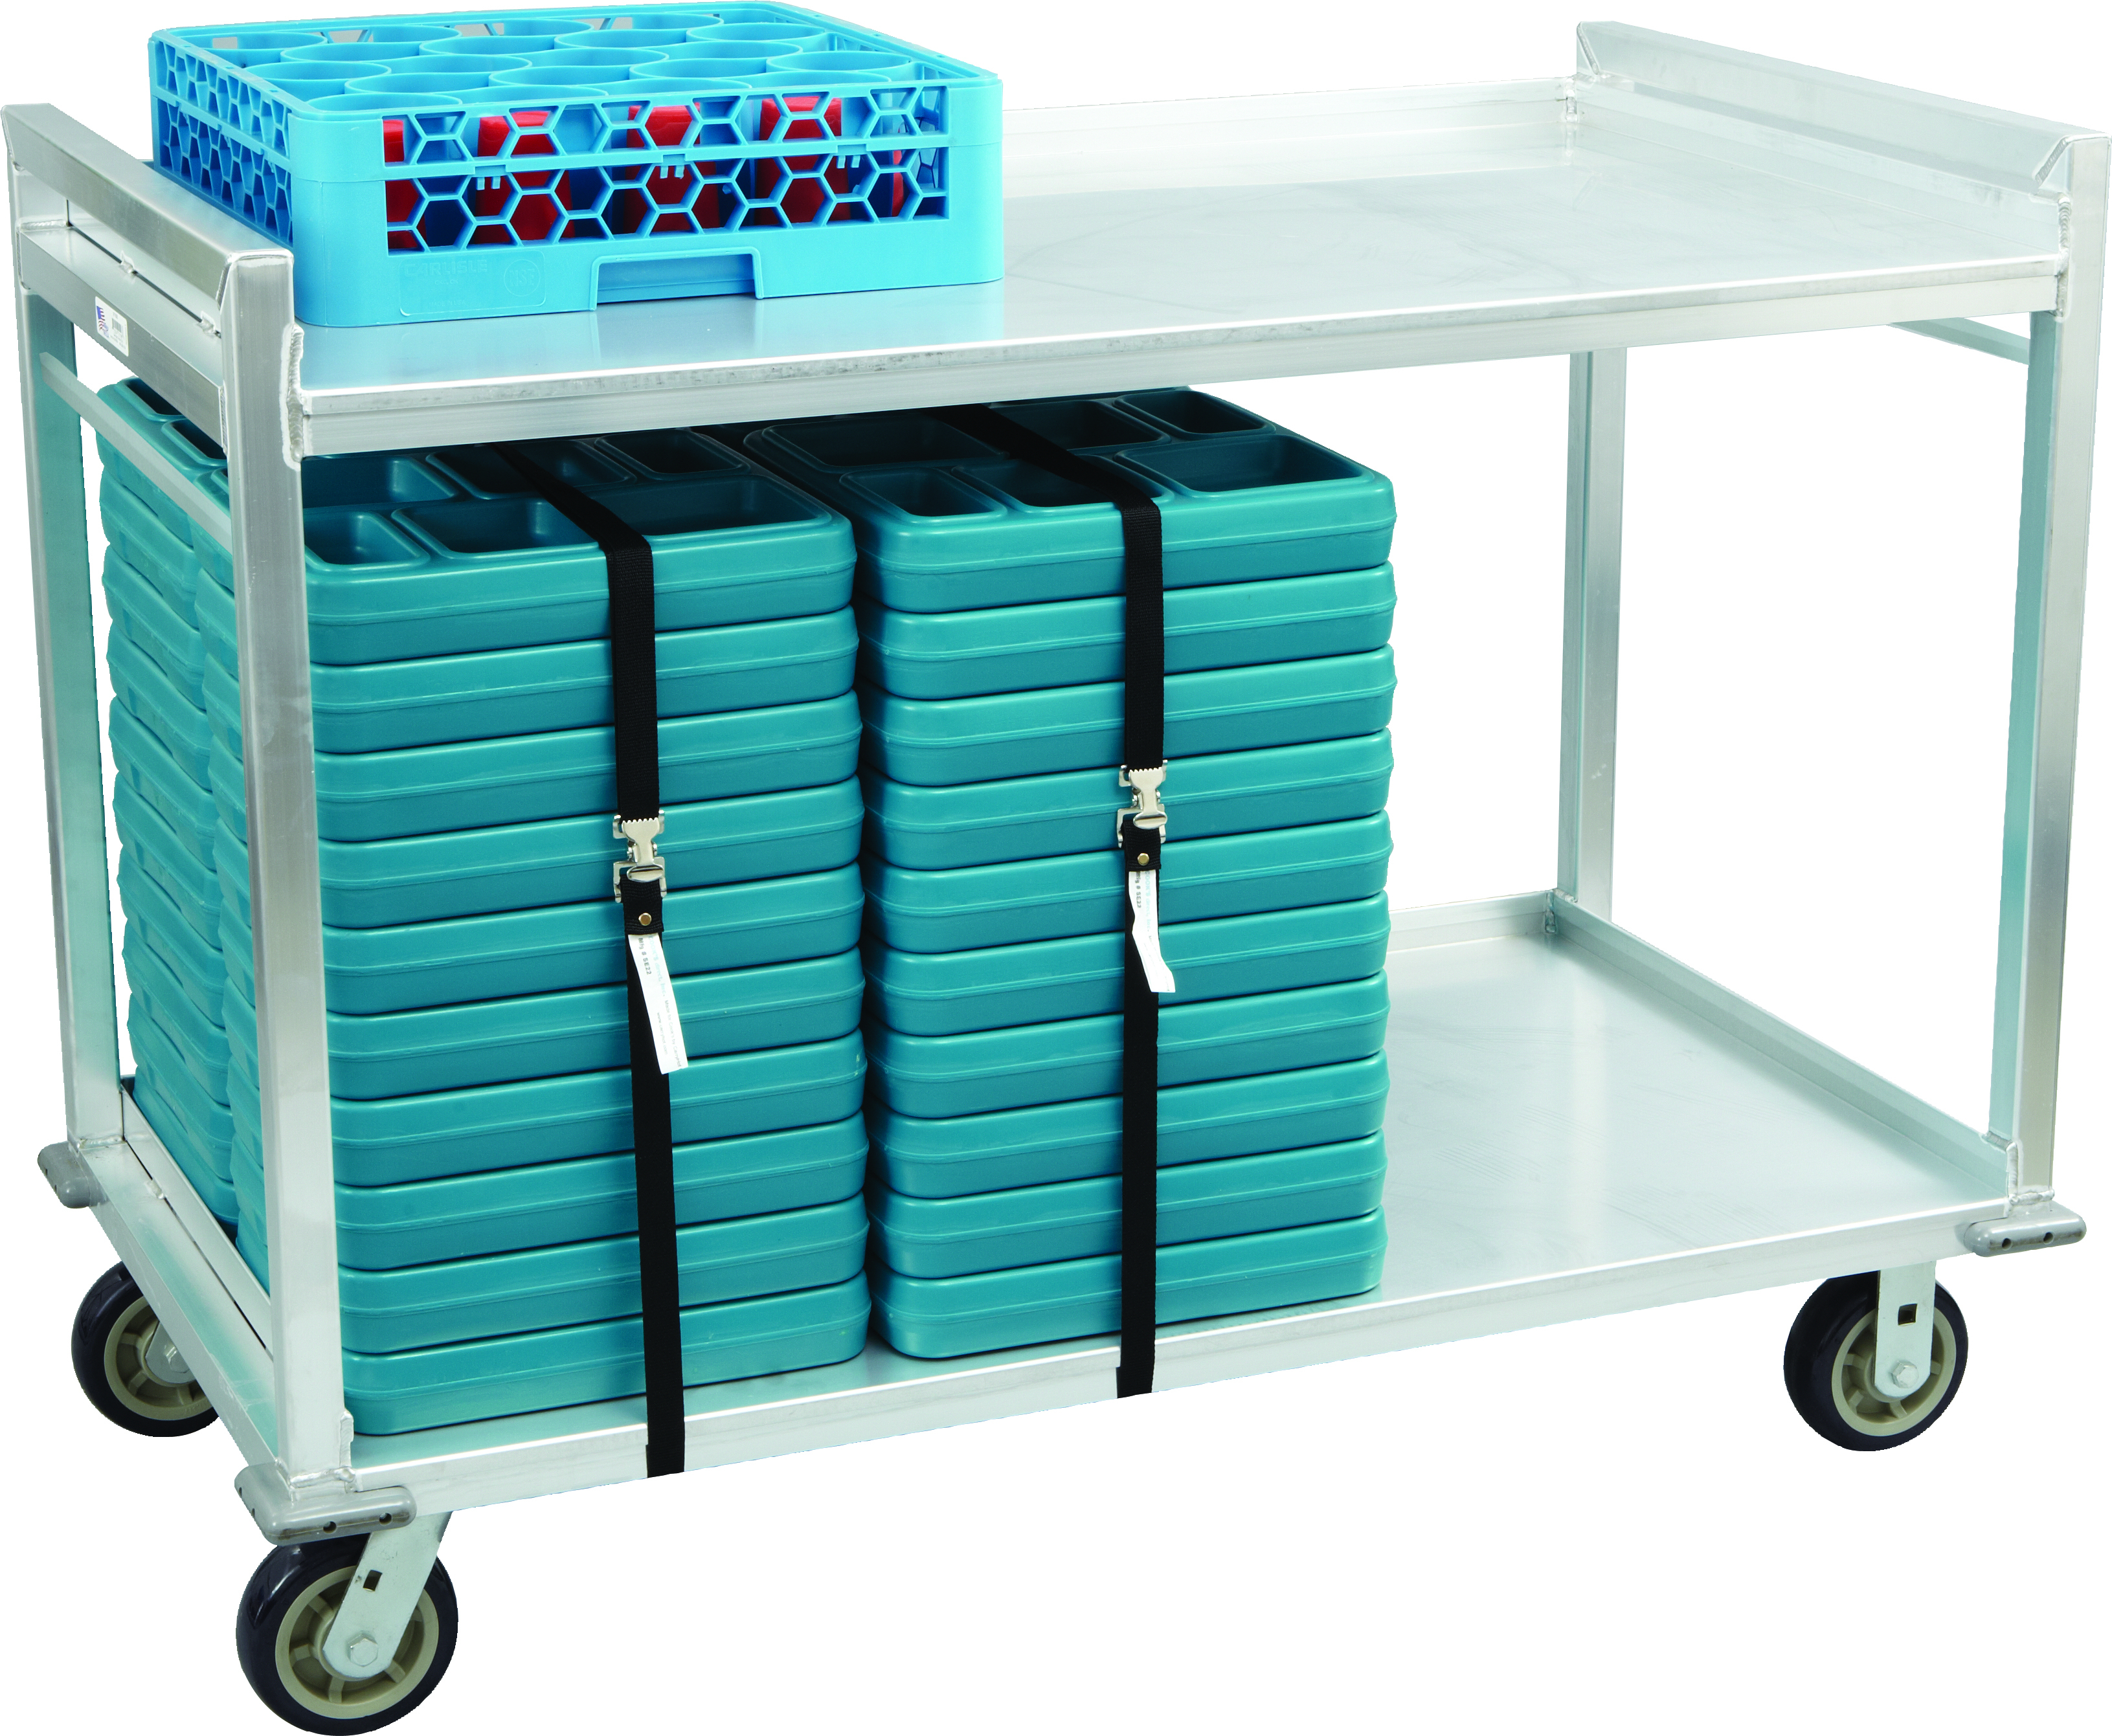 Aluminum Tray Delivery Cart